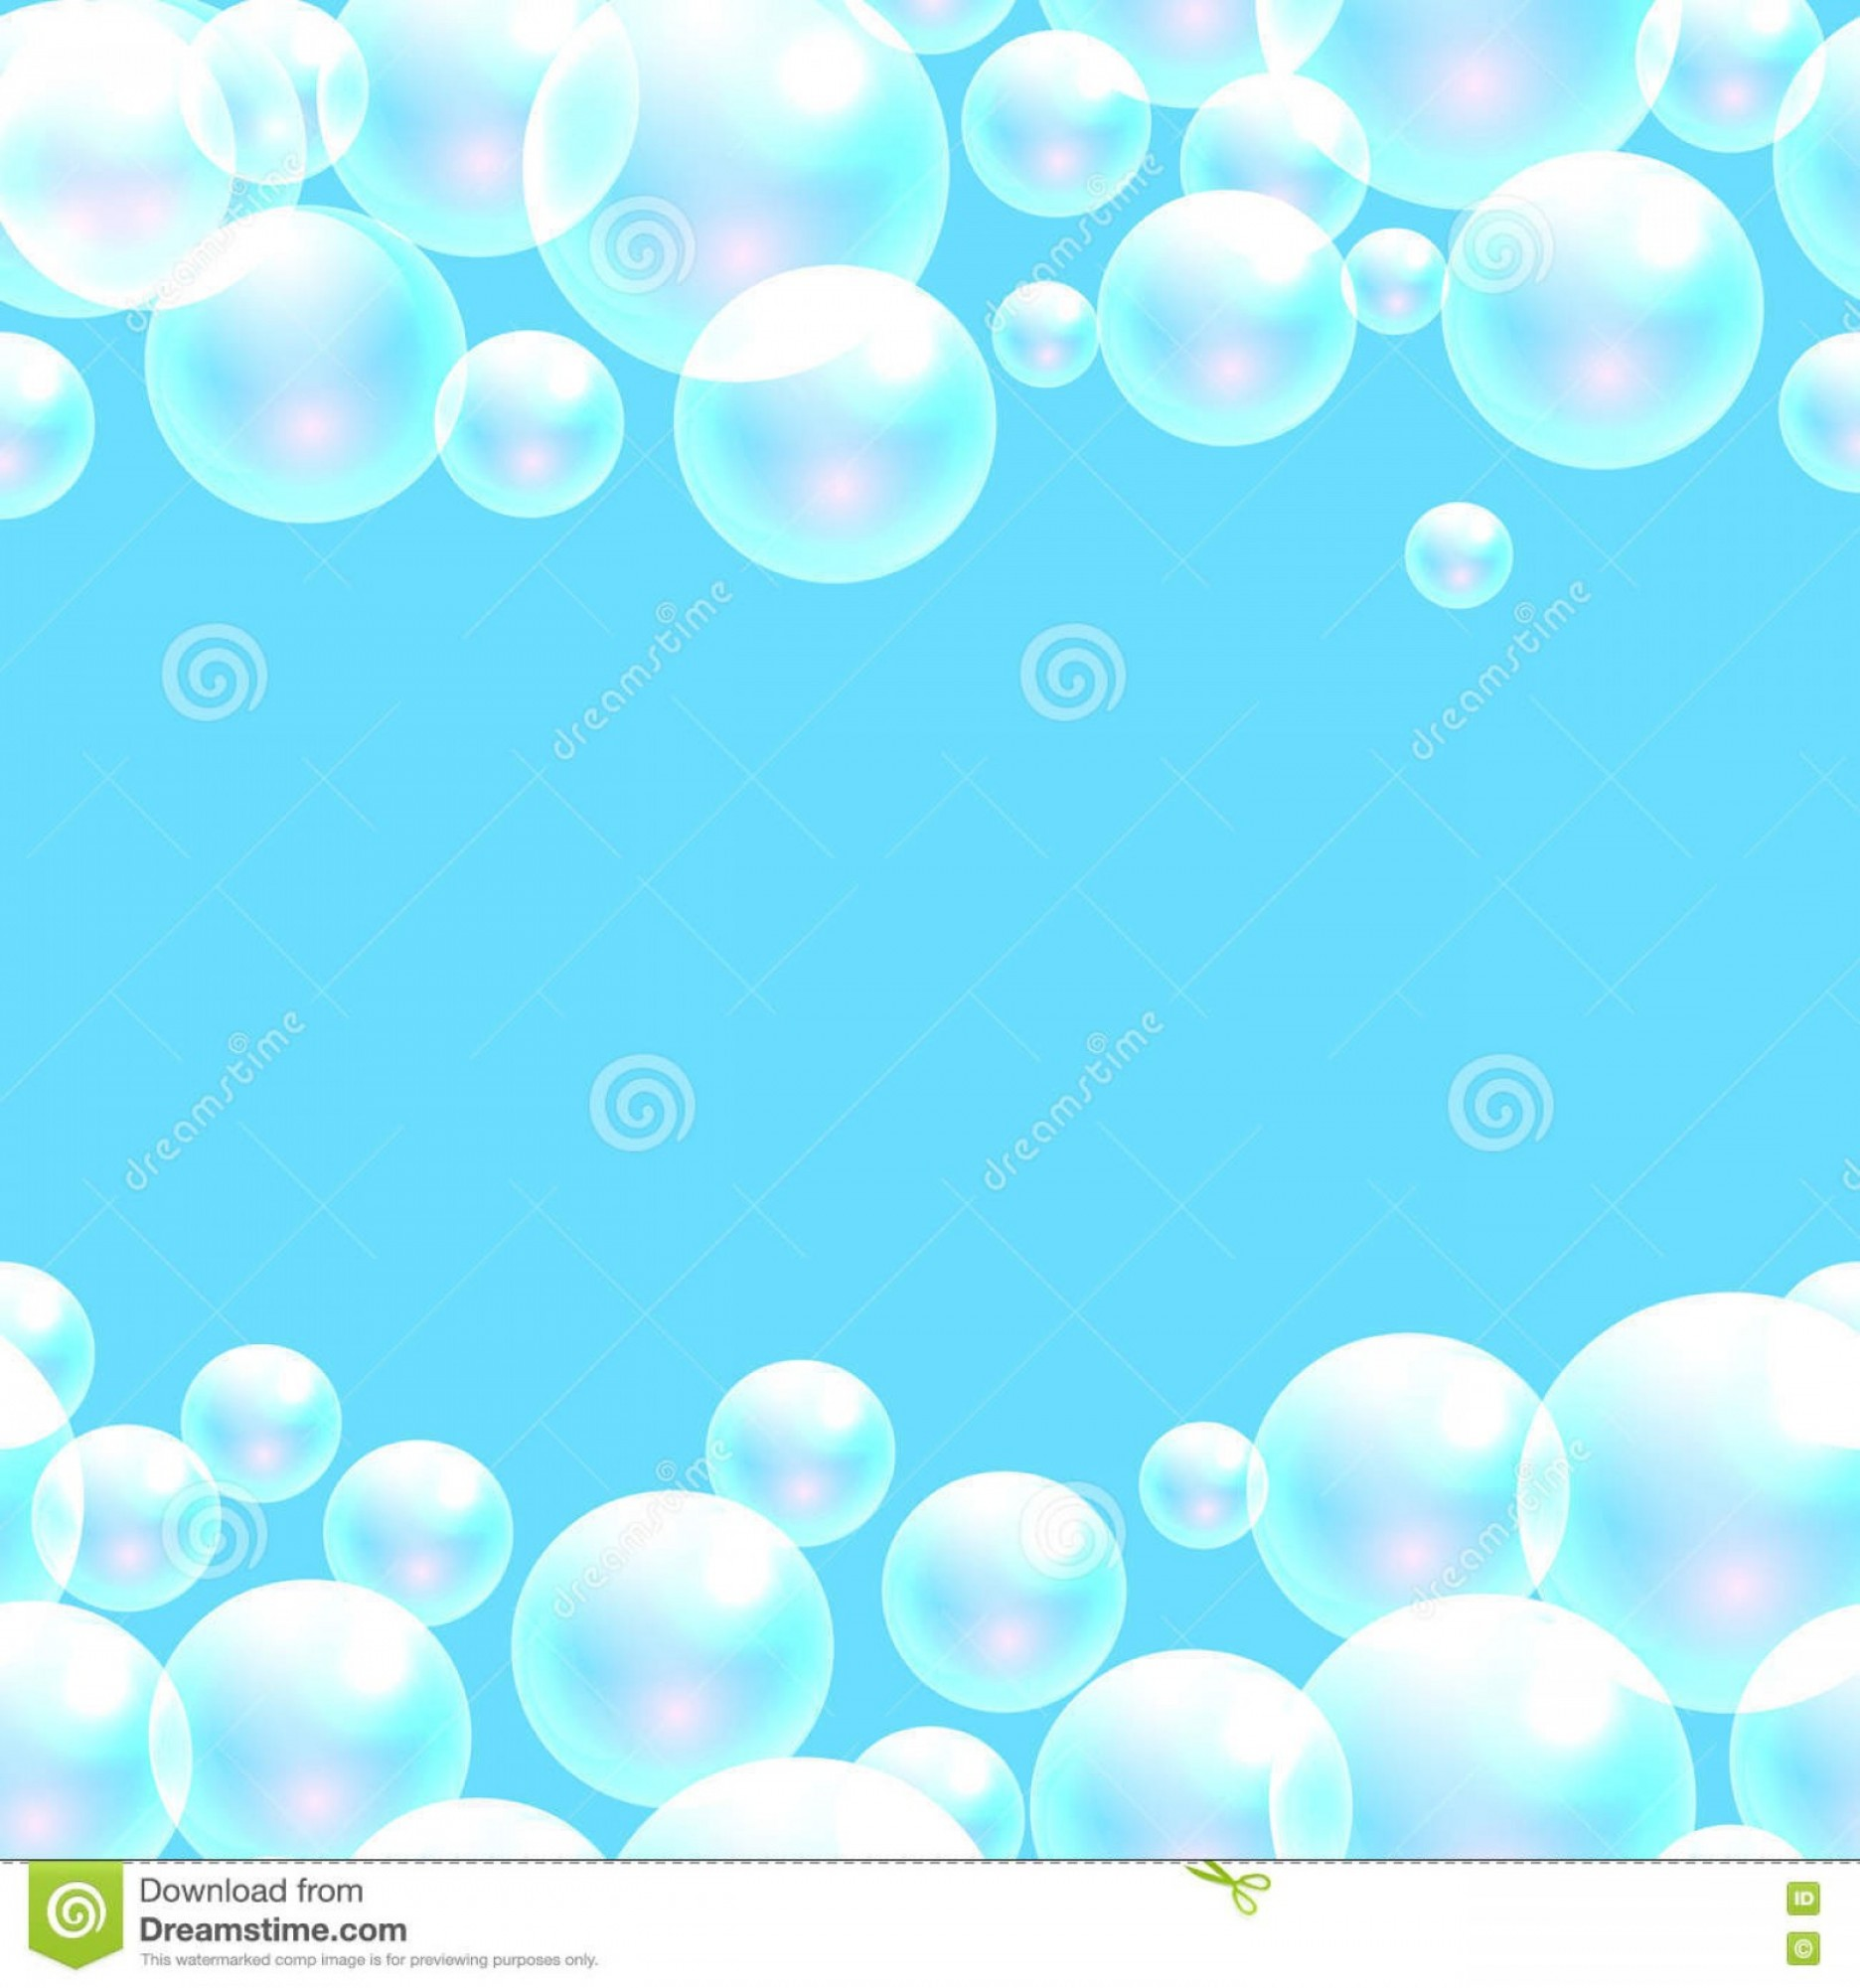 EPS Vector Soap Bubbles: Stock Illustration Vector Soap Bubbles Blue Banner Background Space Text Transparent Washing Powder Package Design Image